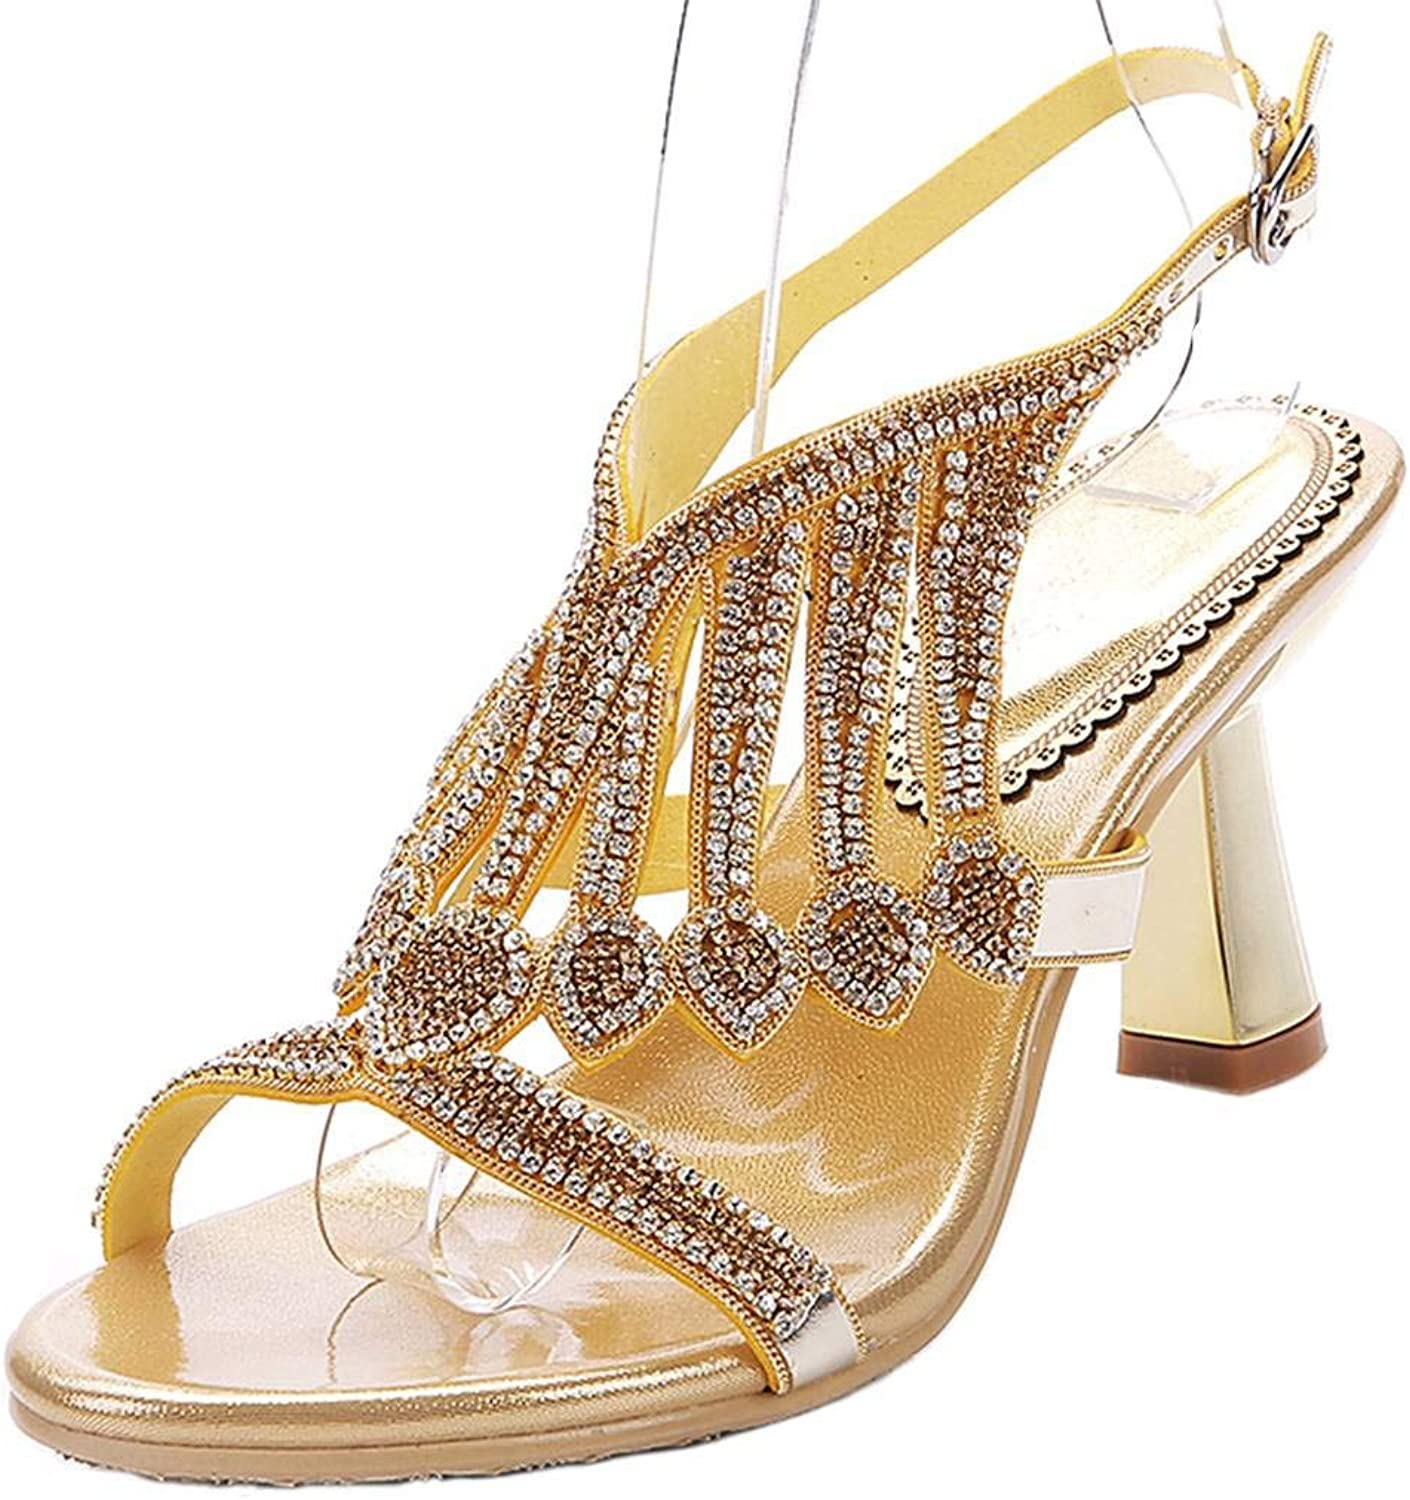 YooPrettyz Dazzling Strappy Evening Sandals Ankle Strap Wedding Dress Sandal Mid Heel